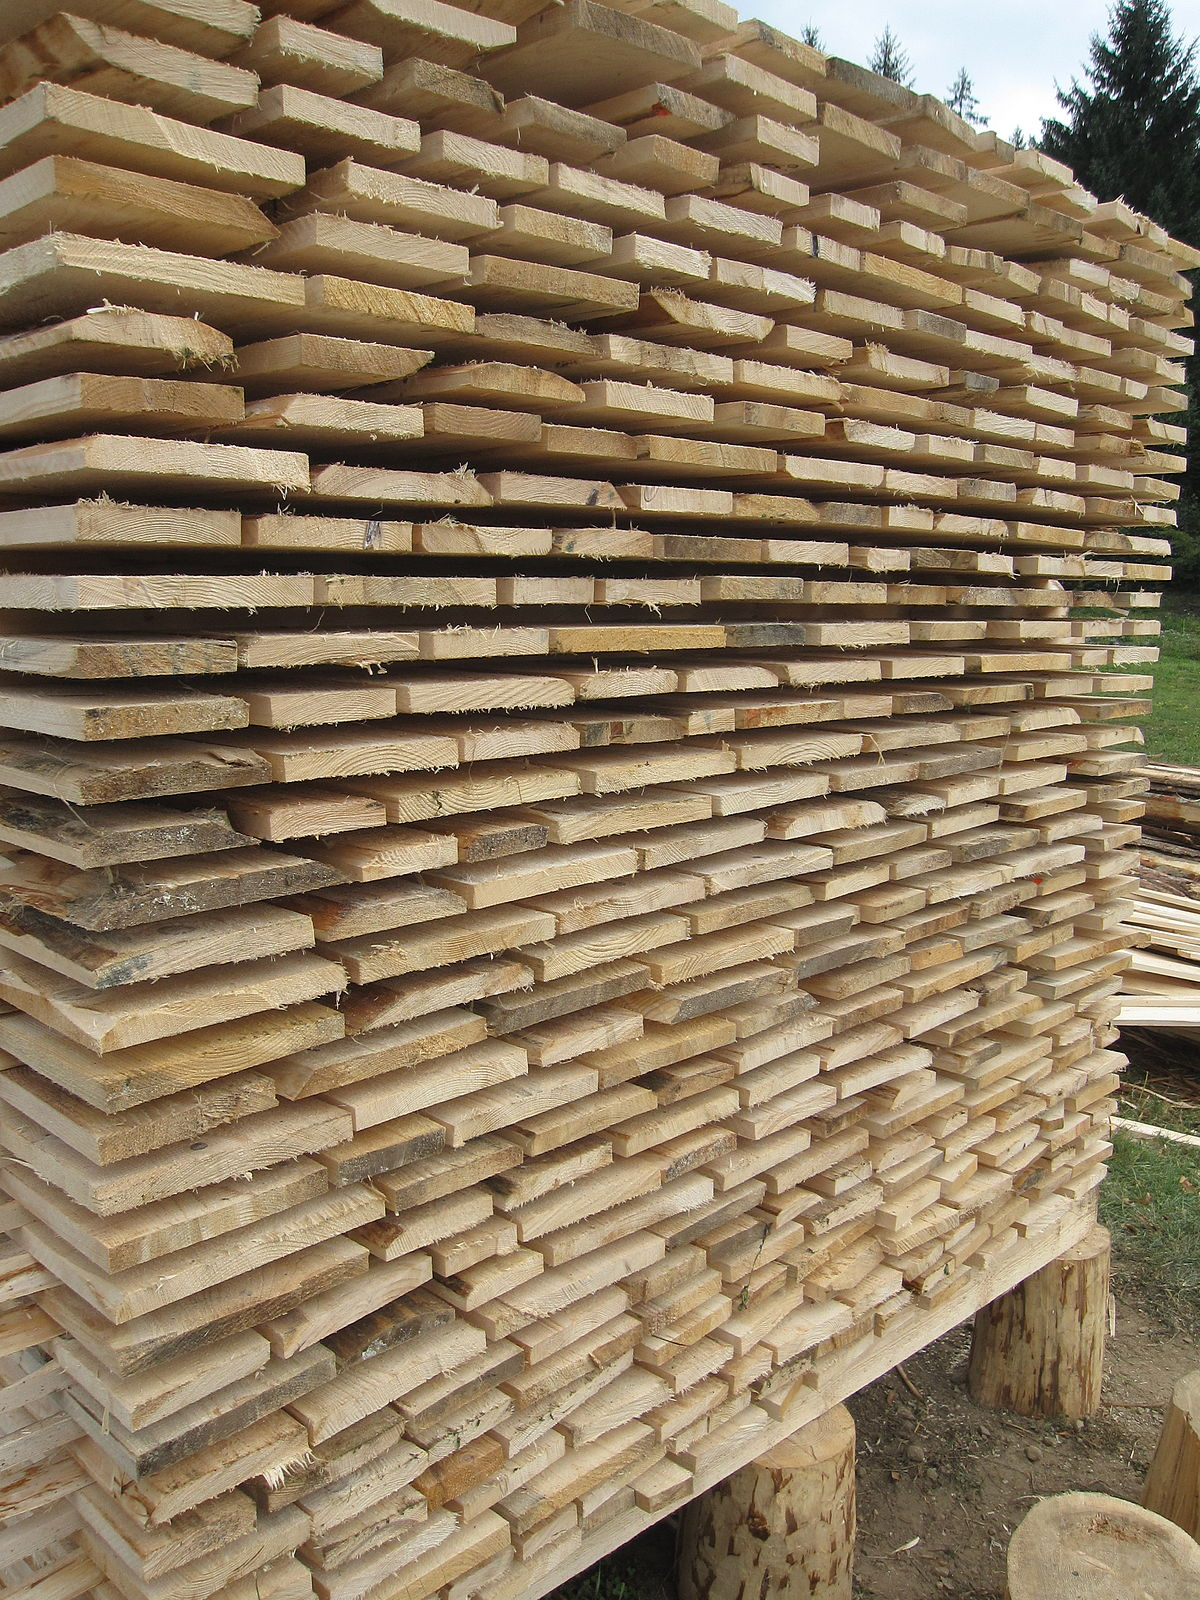 Wood drying - Wikipedia